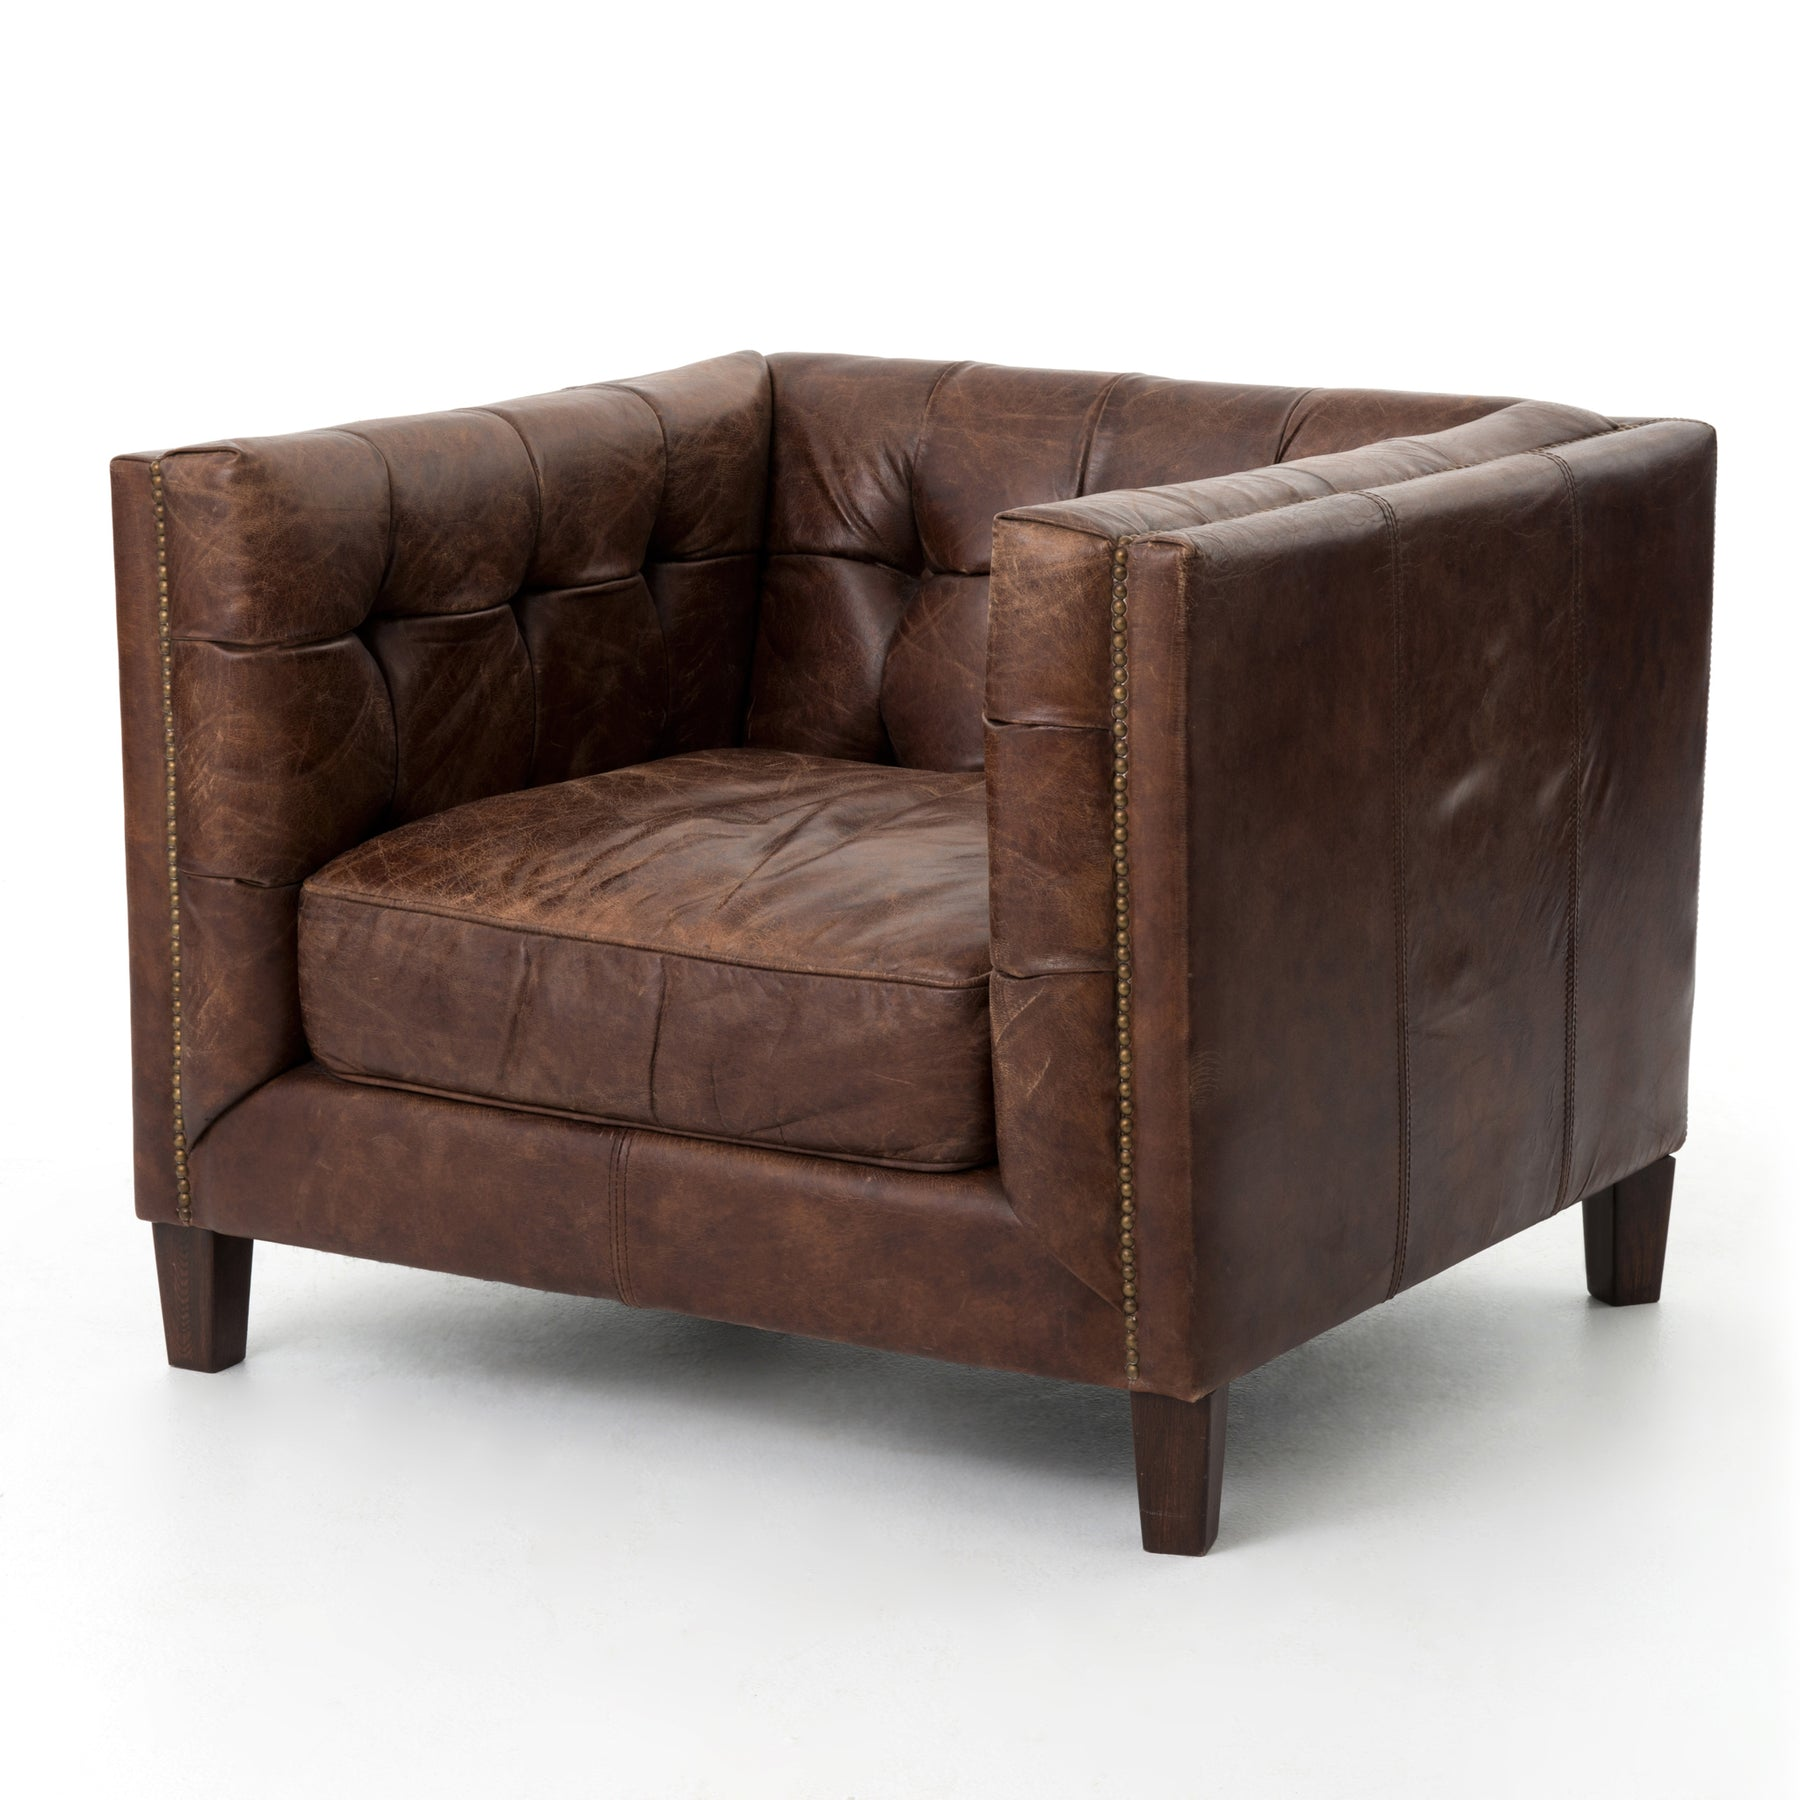 Small Leather Club Chair_commercial Lounge Chairs_accent Chair With  Arms_leather_accent Chair_accent Chair Clearance_cheap Accent Chair_accent  Chairs Under